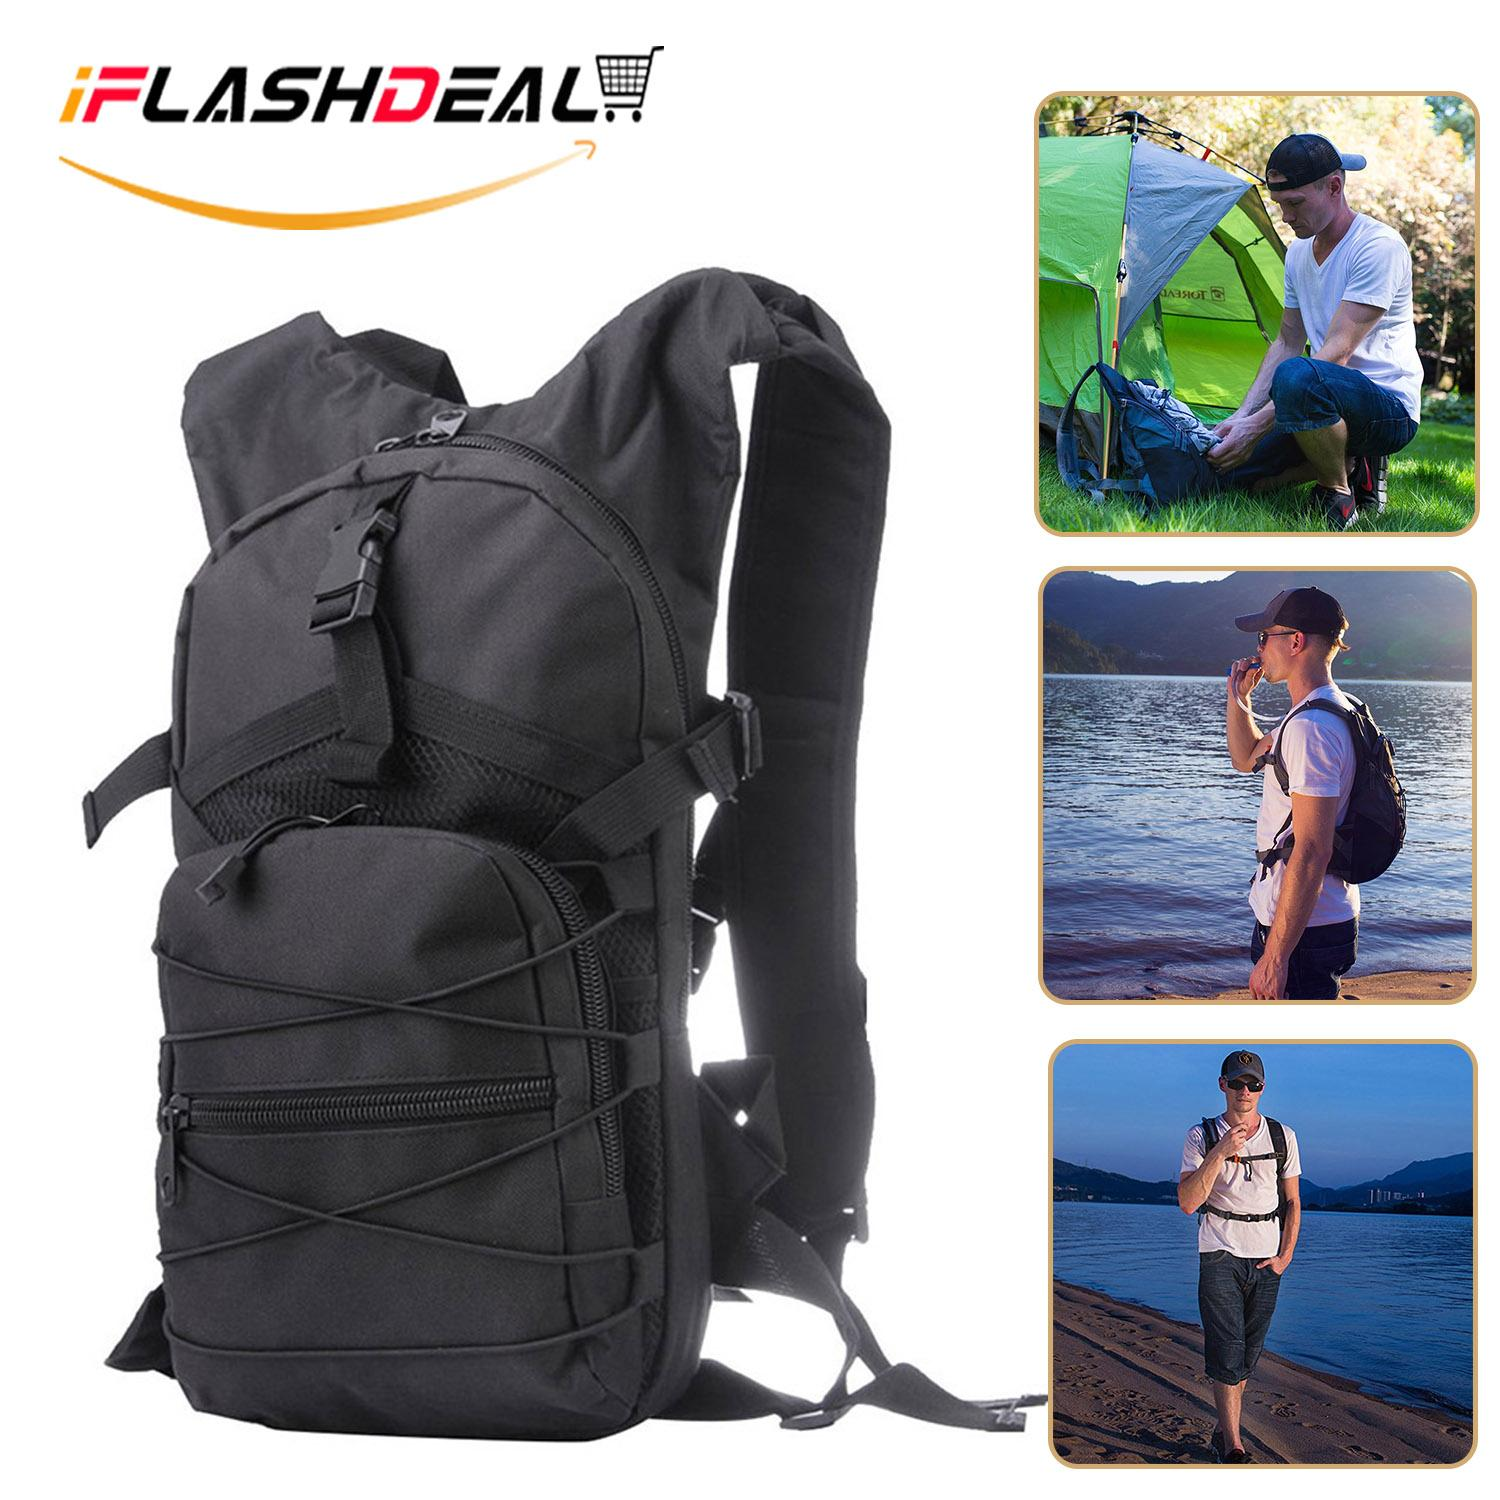 Iflashdeal Hiking Backpack Trekking Bag, Water-Resistant Travel Cycling Backpack, Lightweight Back Pack For Outdoor, Camping 15l By Iflashdeal.